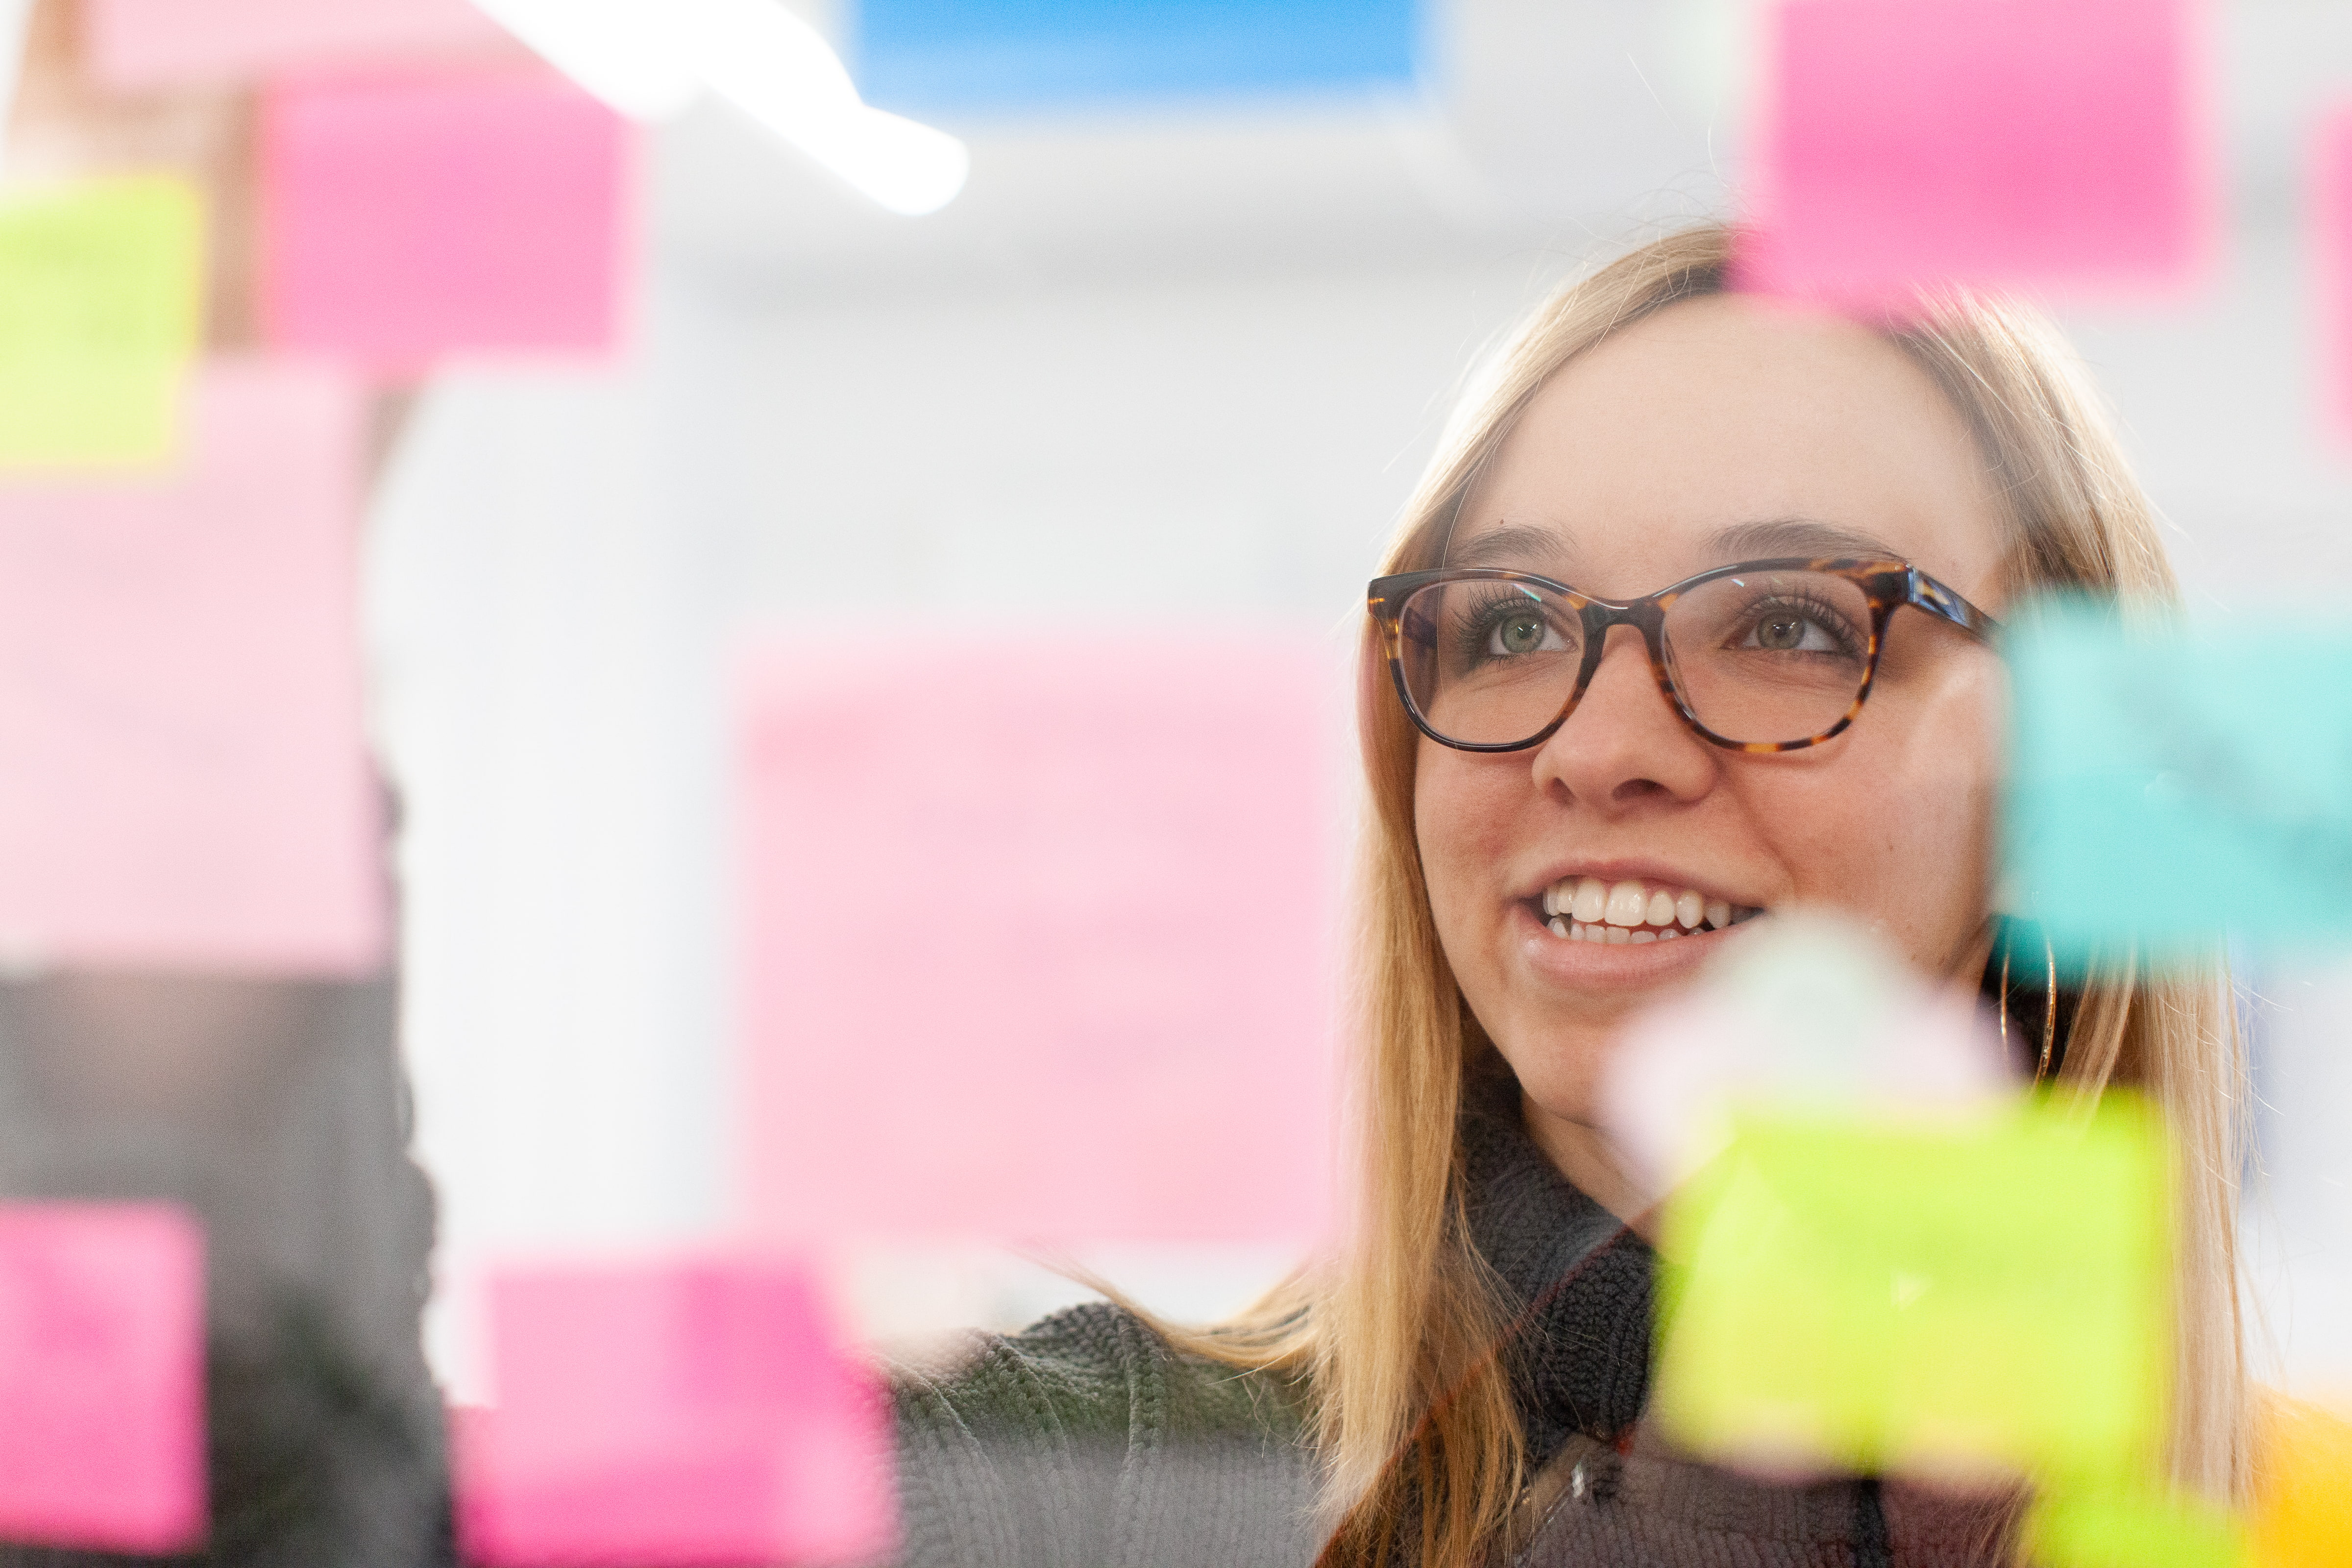 Woman reads sticky notes on a window to brainstorm marketing strategies